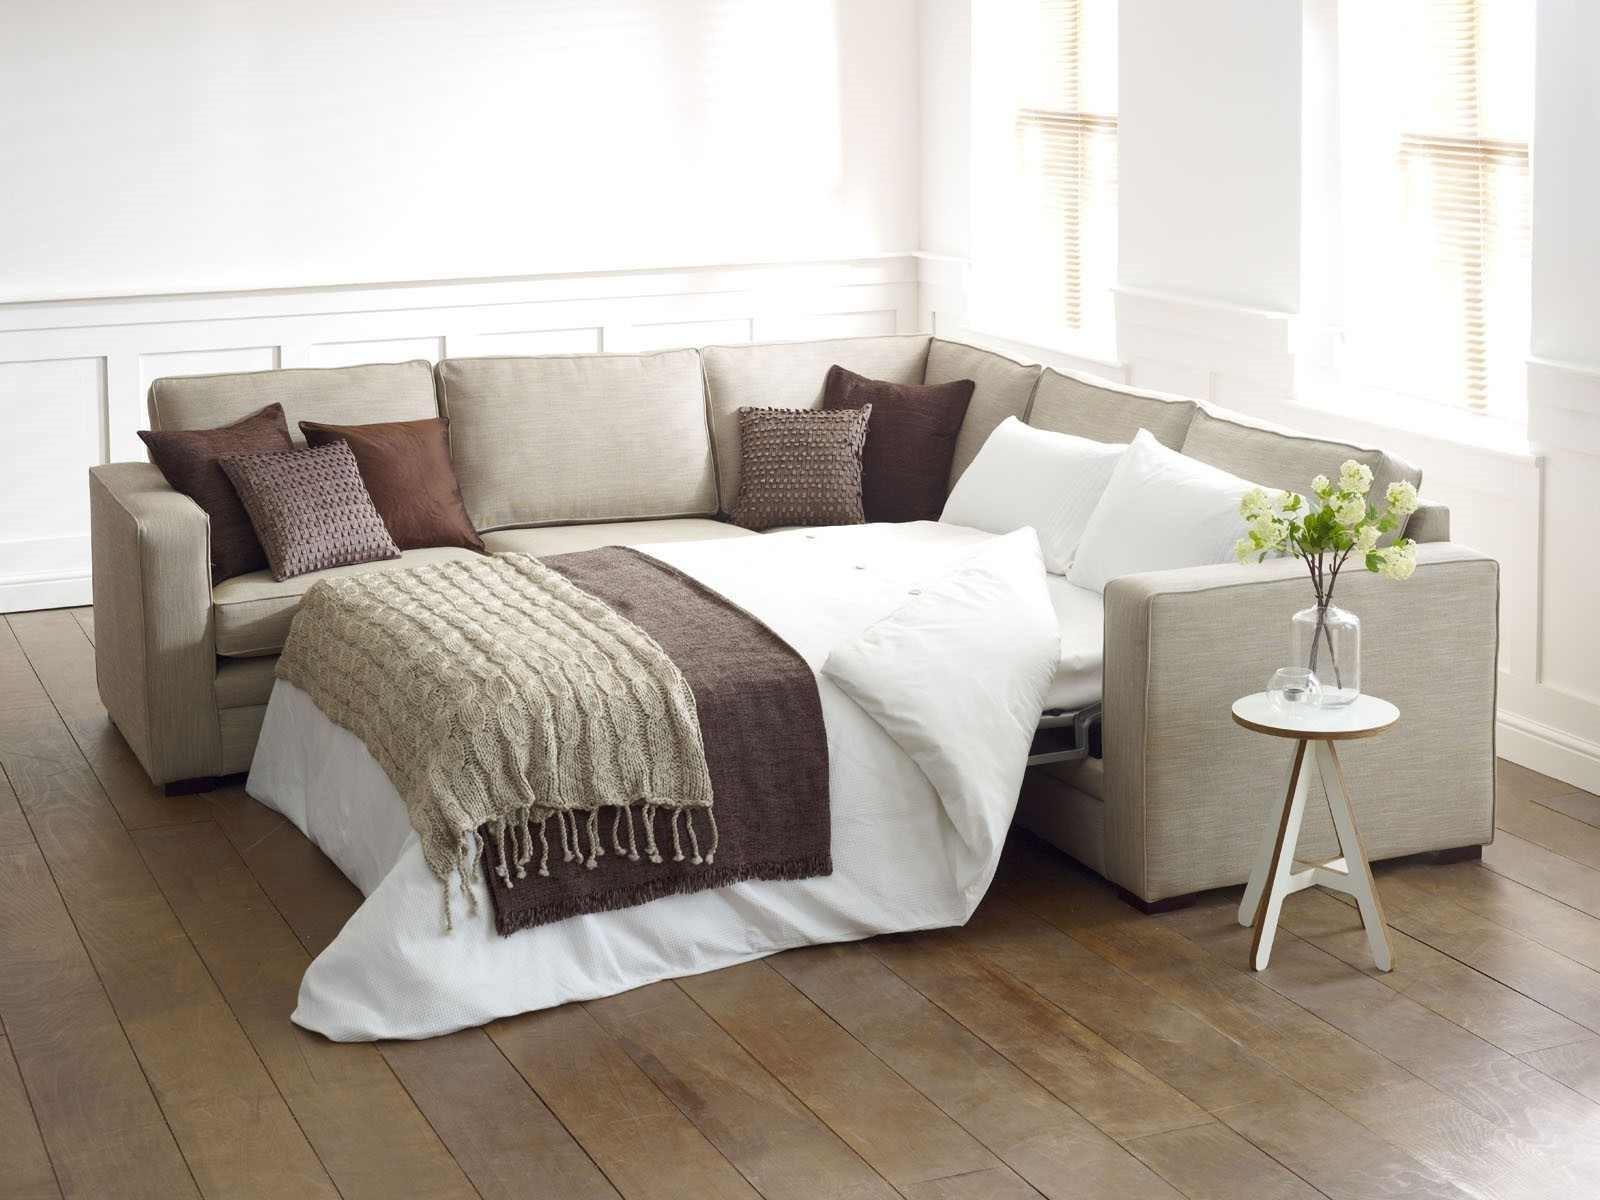 Sheets For Sofa Bed Mattress 27 With Sheets For Sofa Bed Mattress For Sheets For Sofa Beds Mattress (Image 8 of 20)